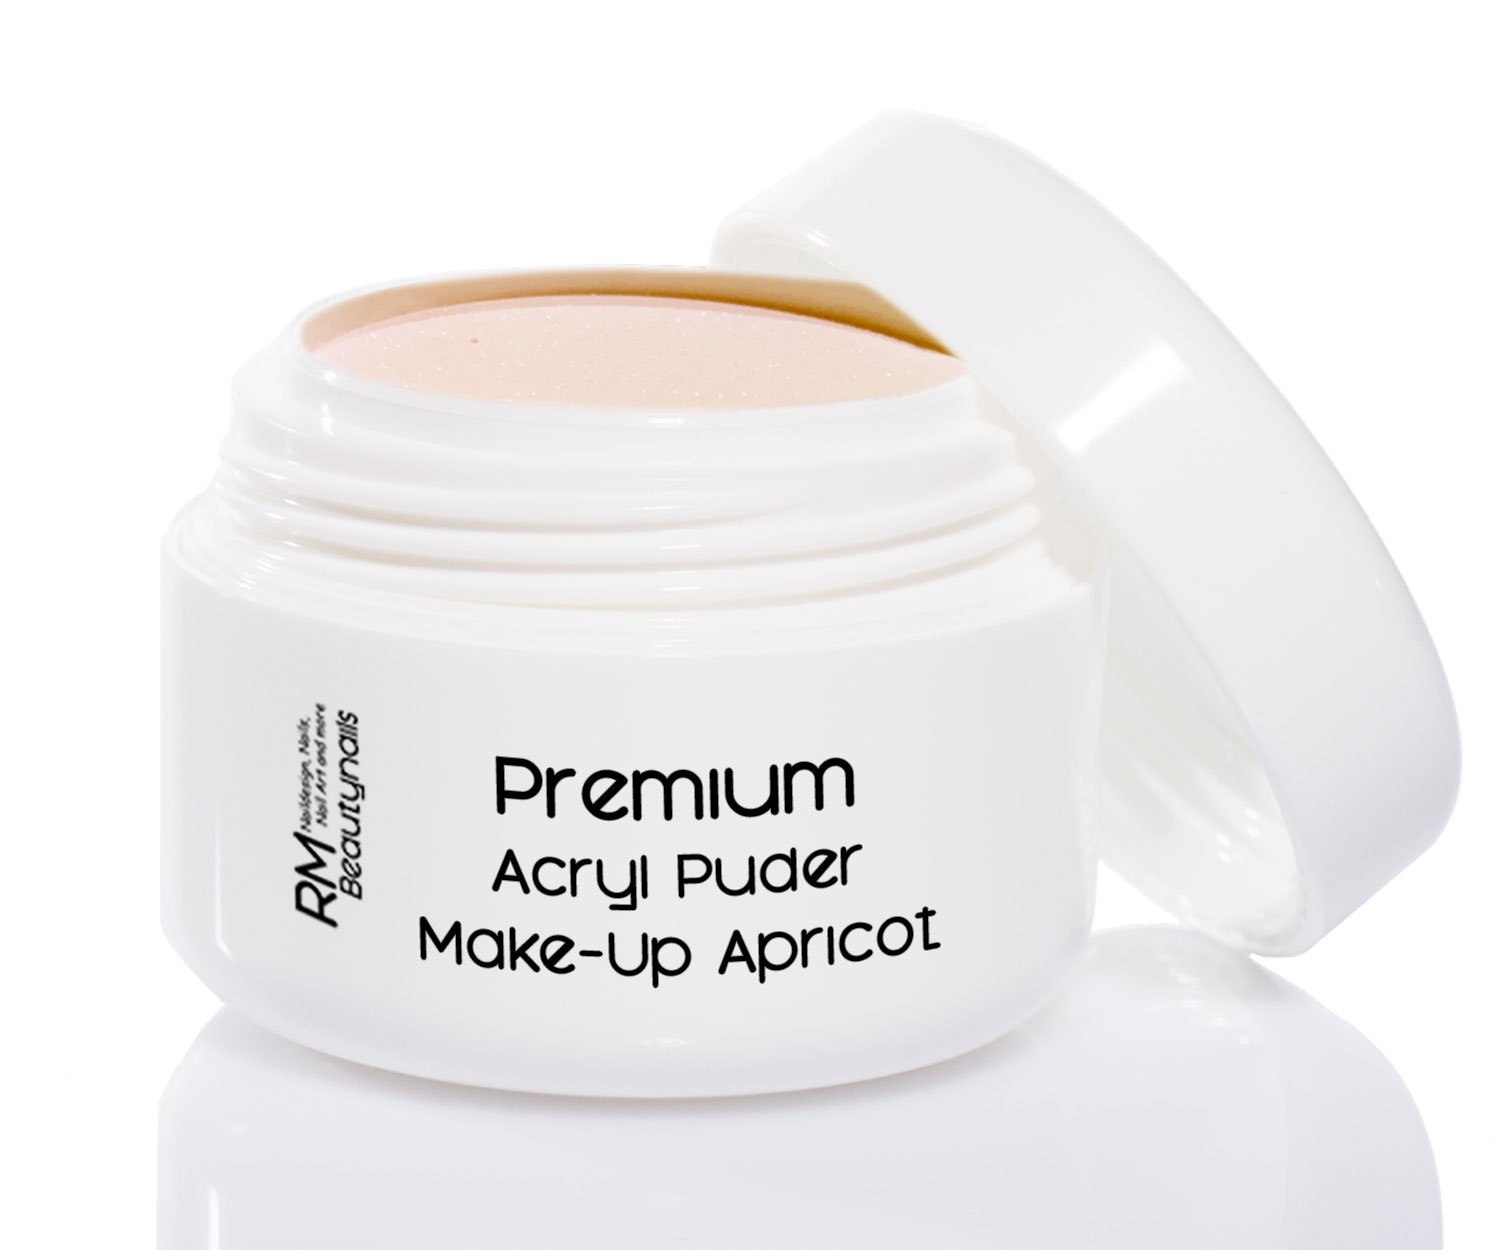 35g Acryl Puder Apricot Make Up Cover Camouflage in Studio Qualität RM Beautynails